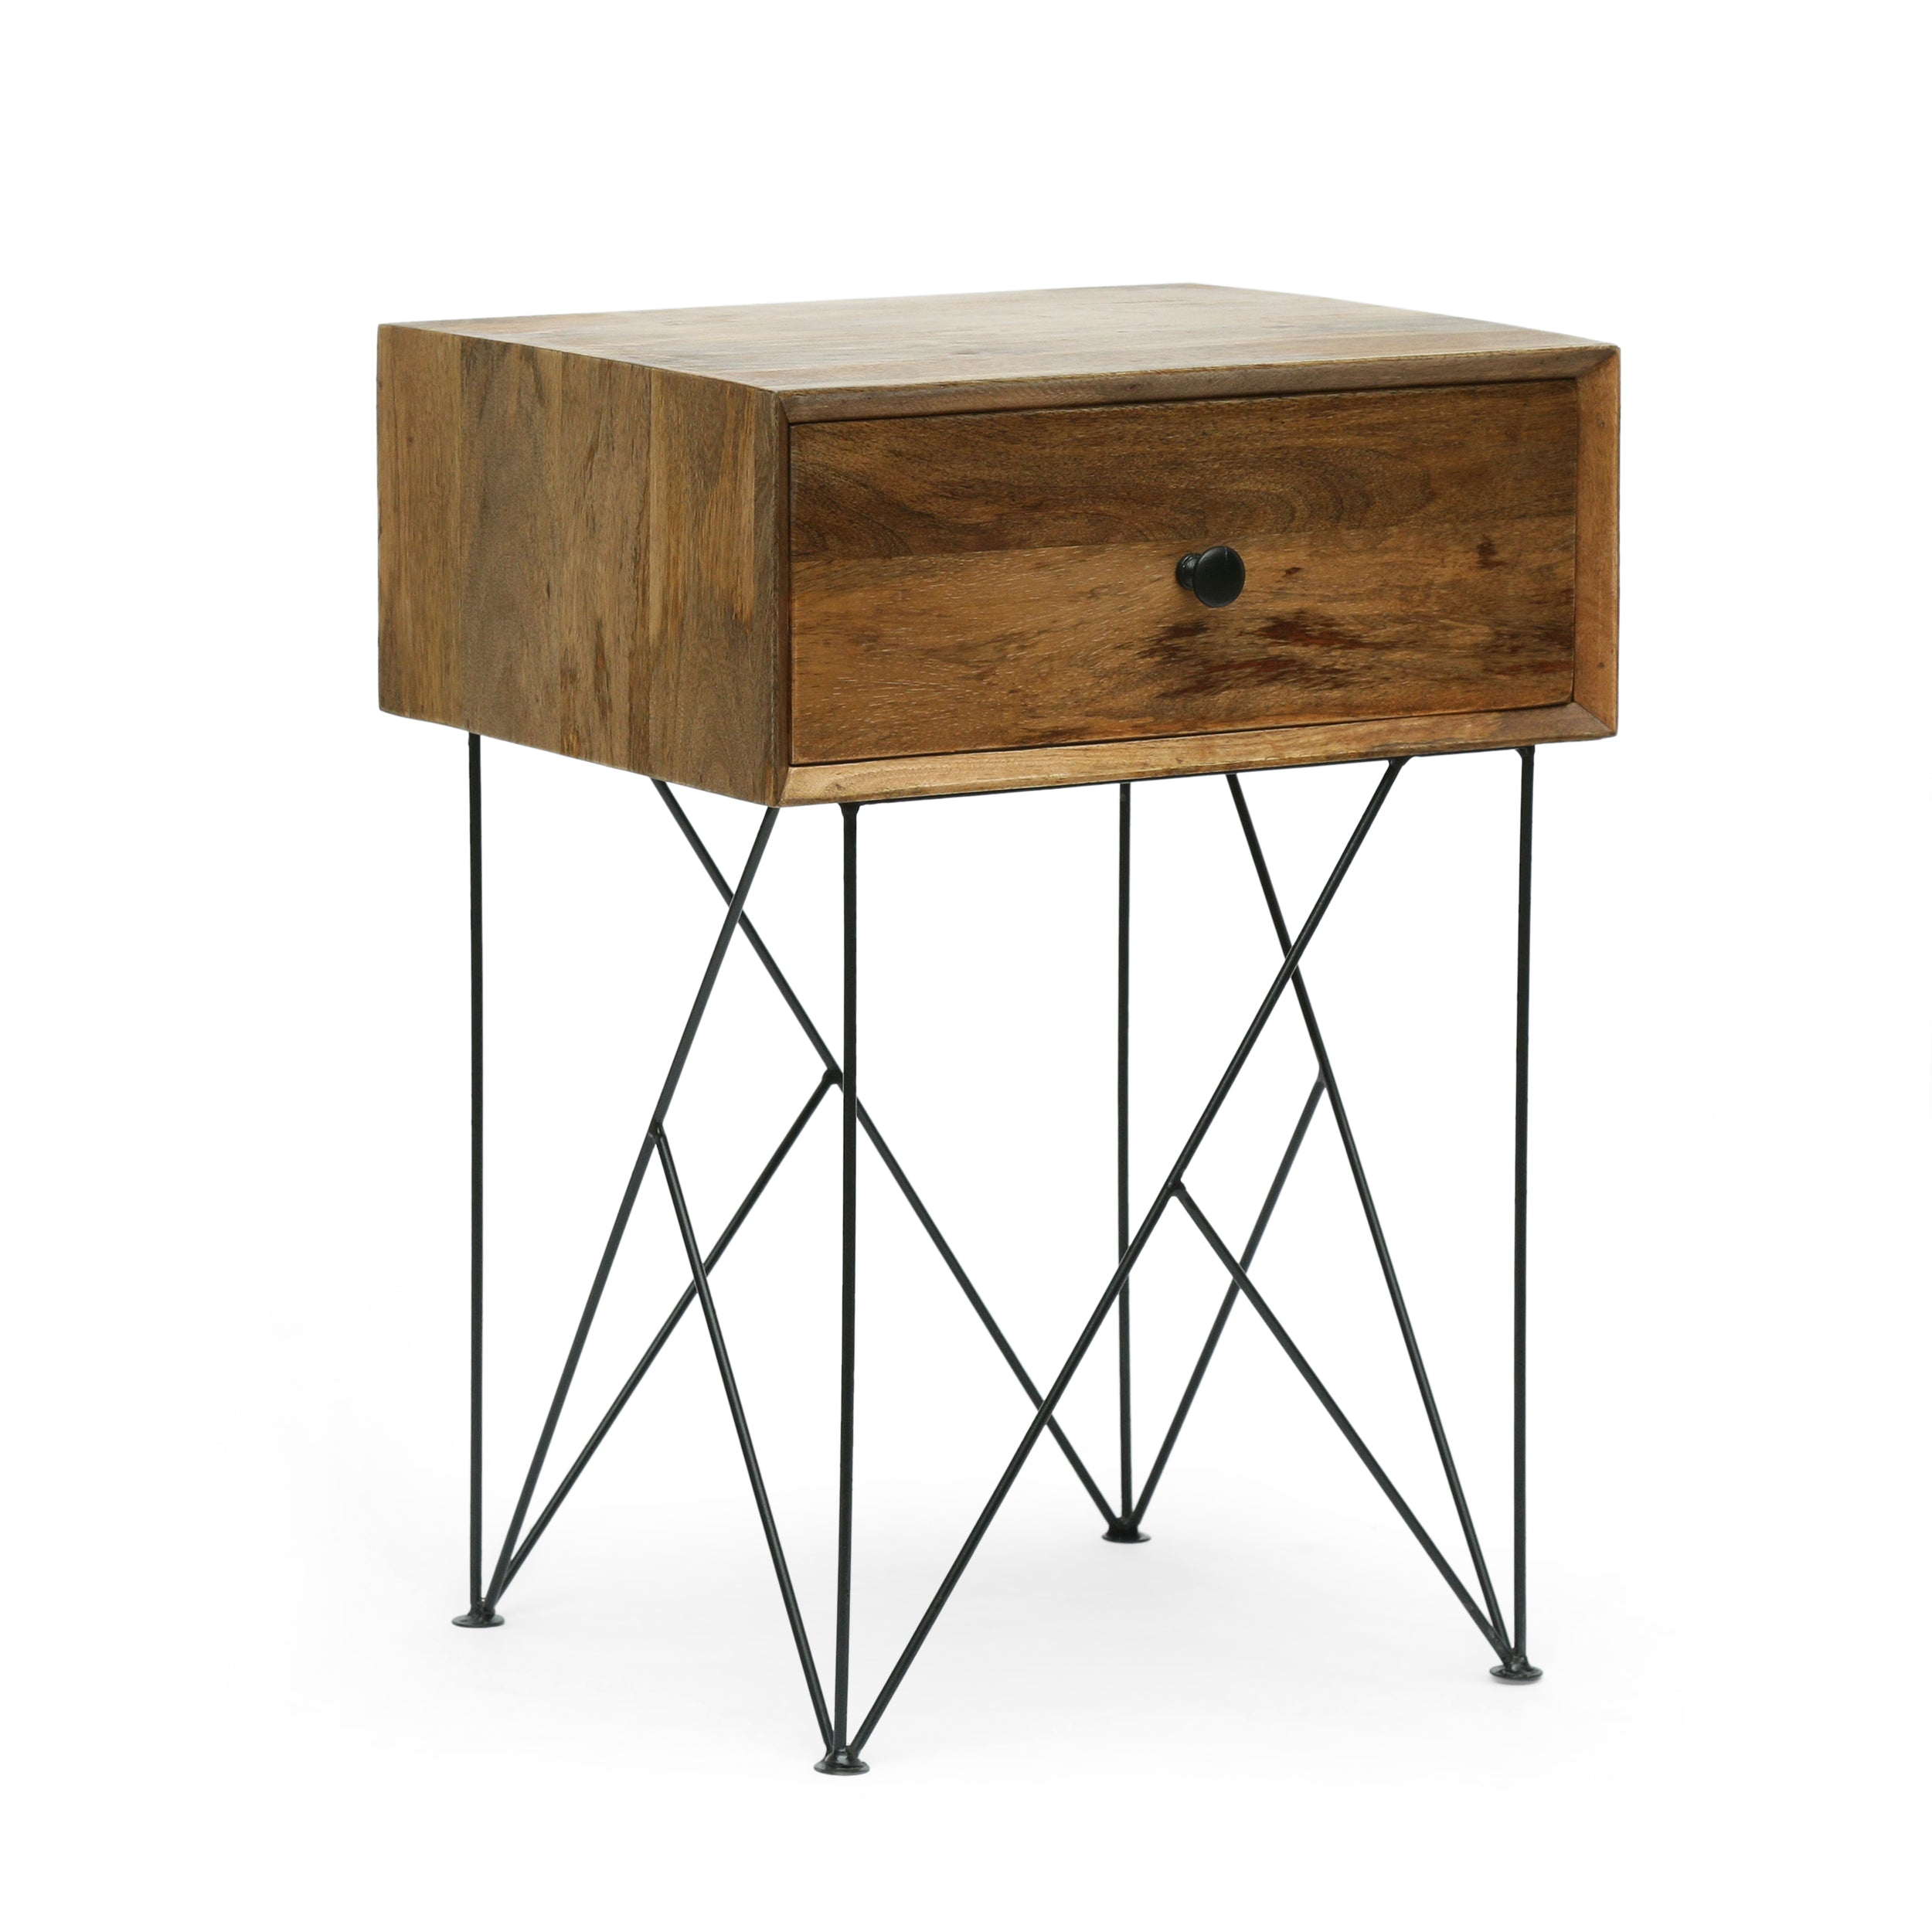 Arcanum Modern Industrial Handcrafted Mango Wood Side Table Natural and Black